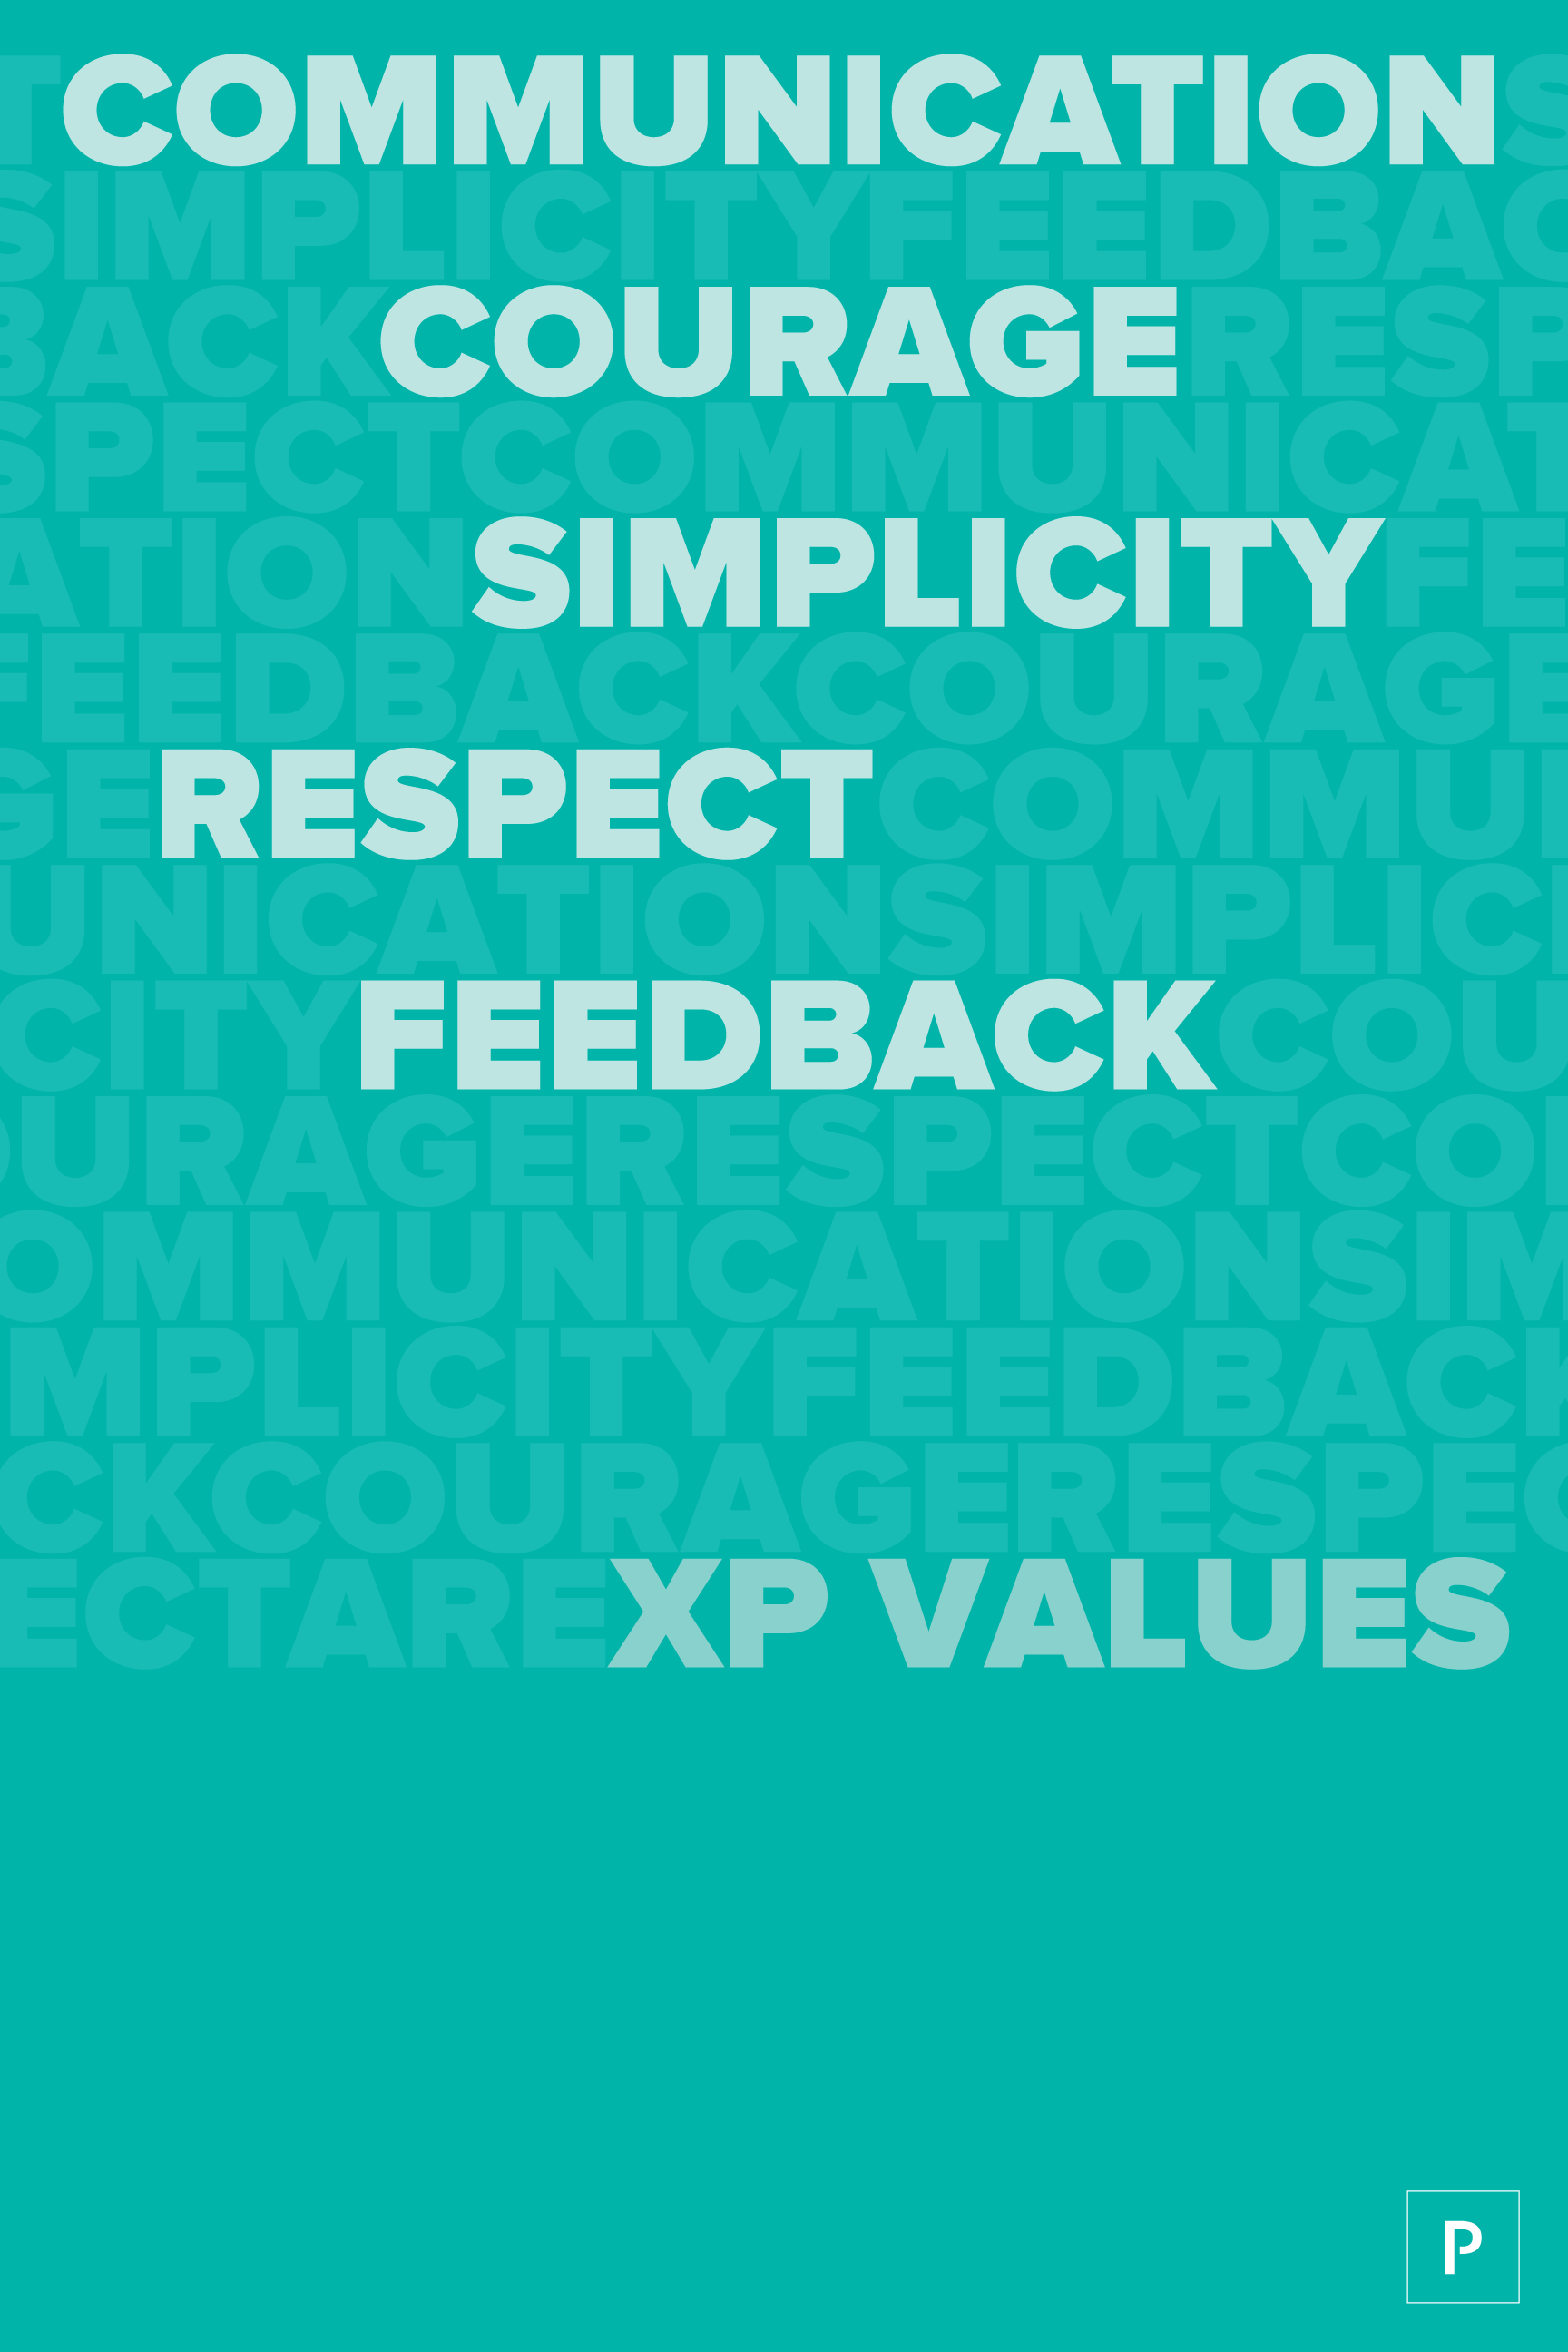 Xp values posters all words